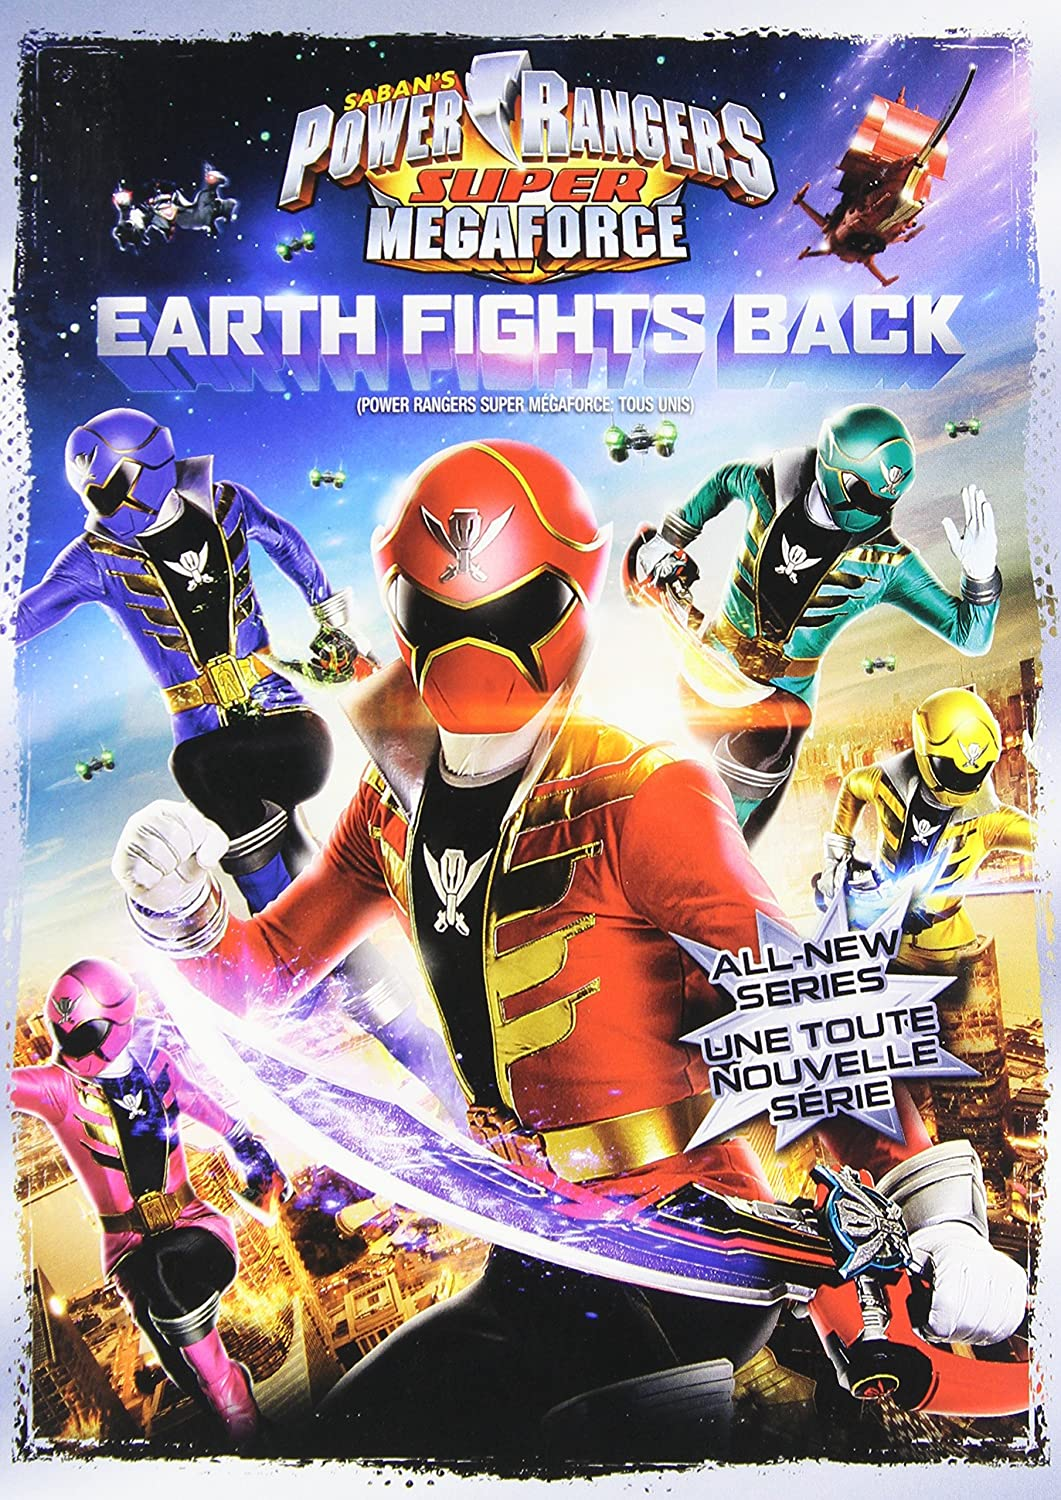 Amazon.com: Power Rangers Super Megaforce V1: Movies & TV